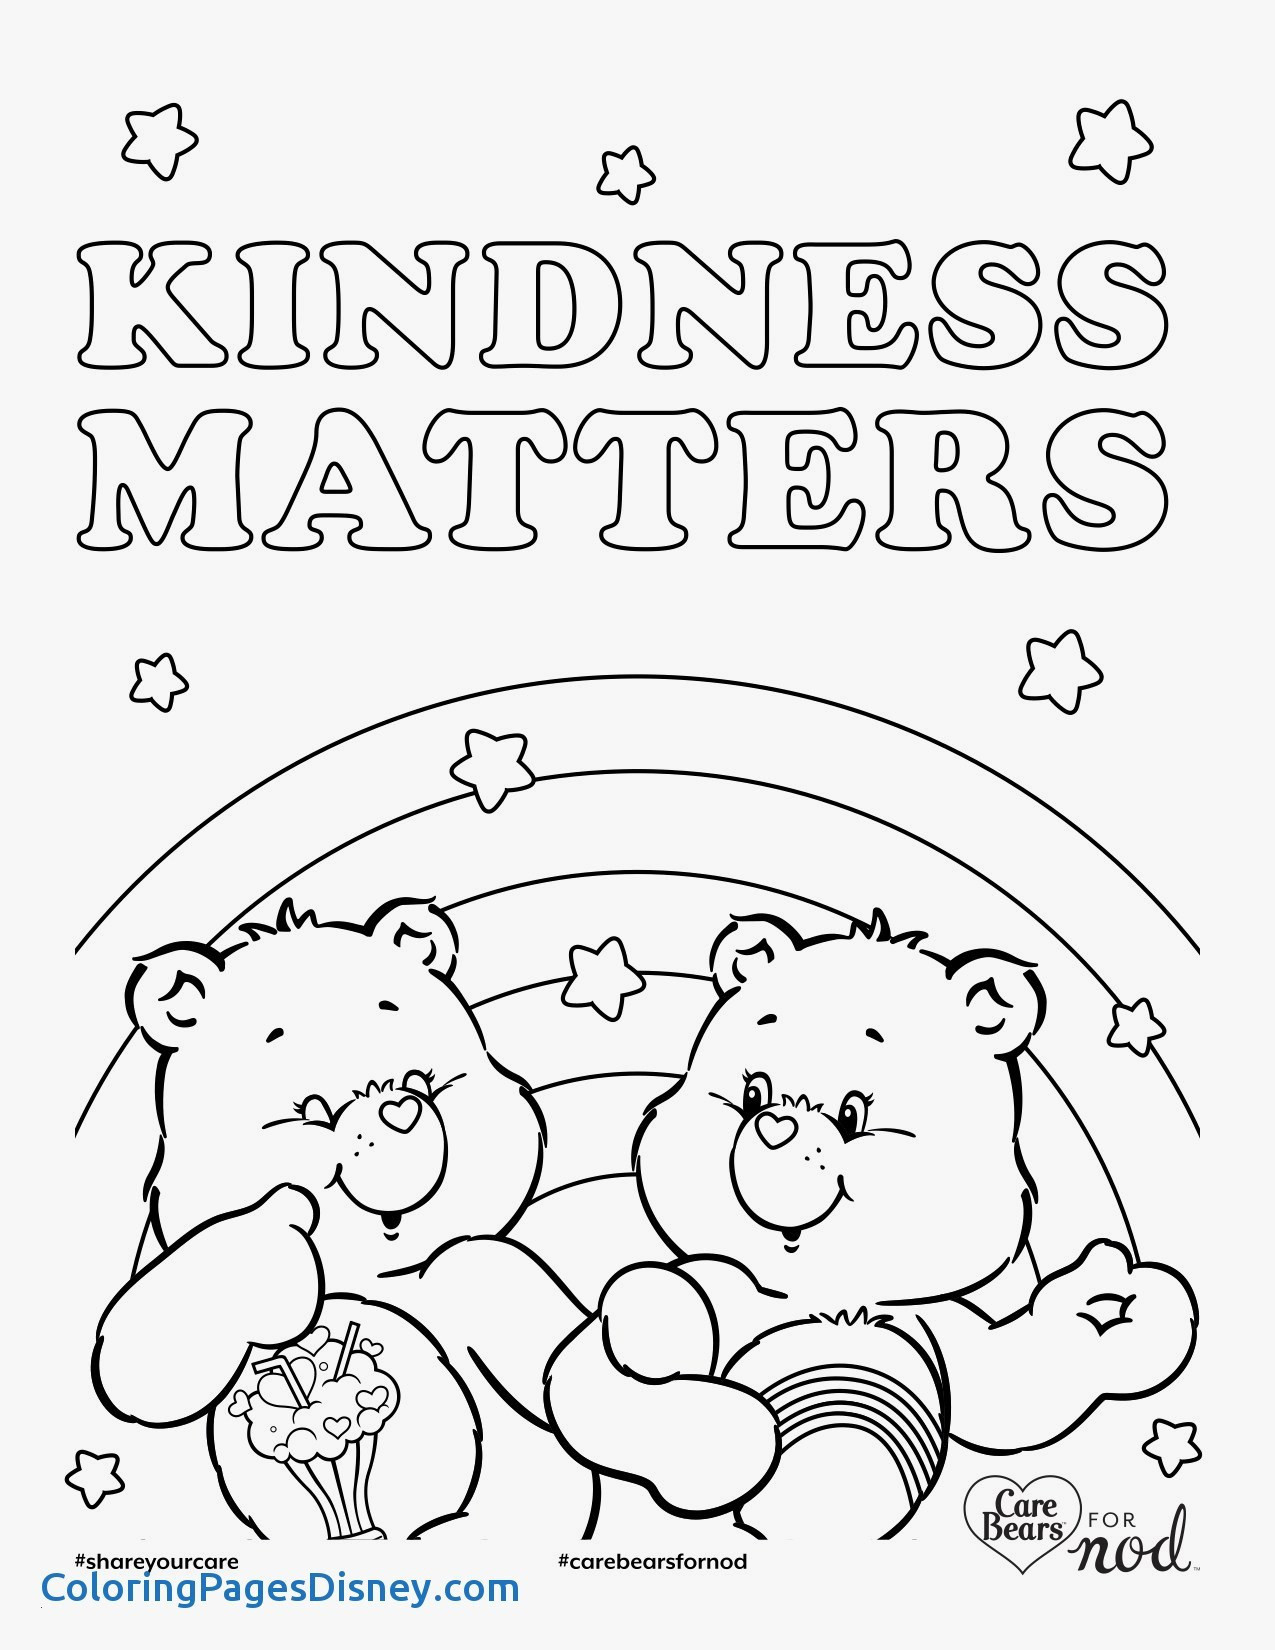 28 Stranger Danger Coloring Pages Gallery